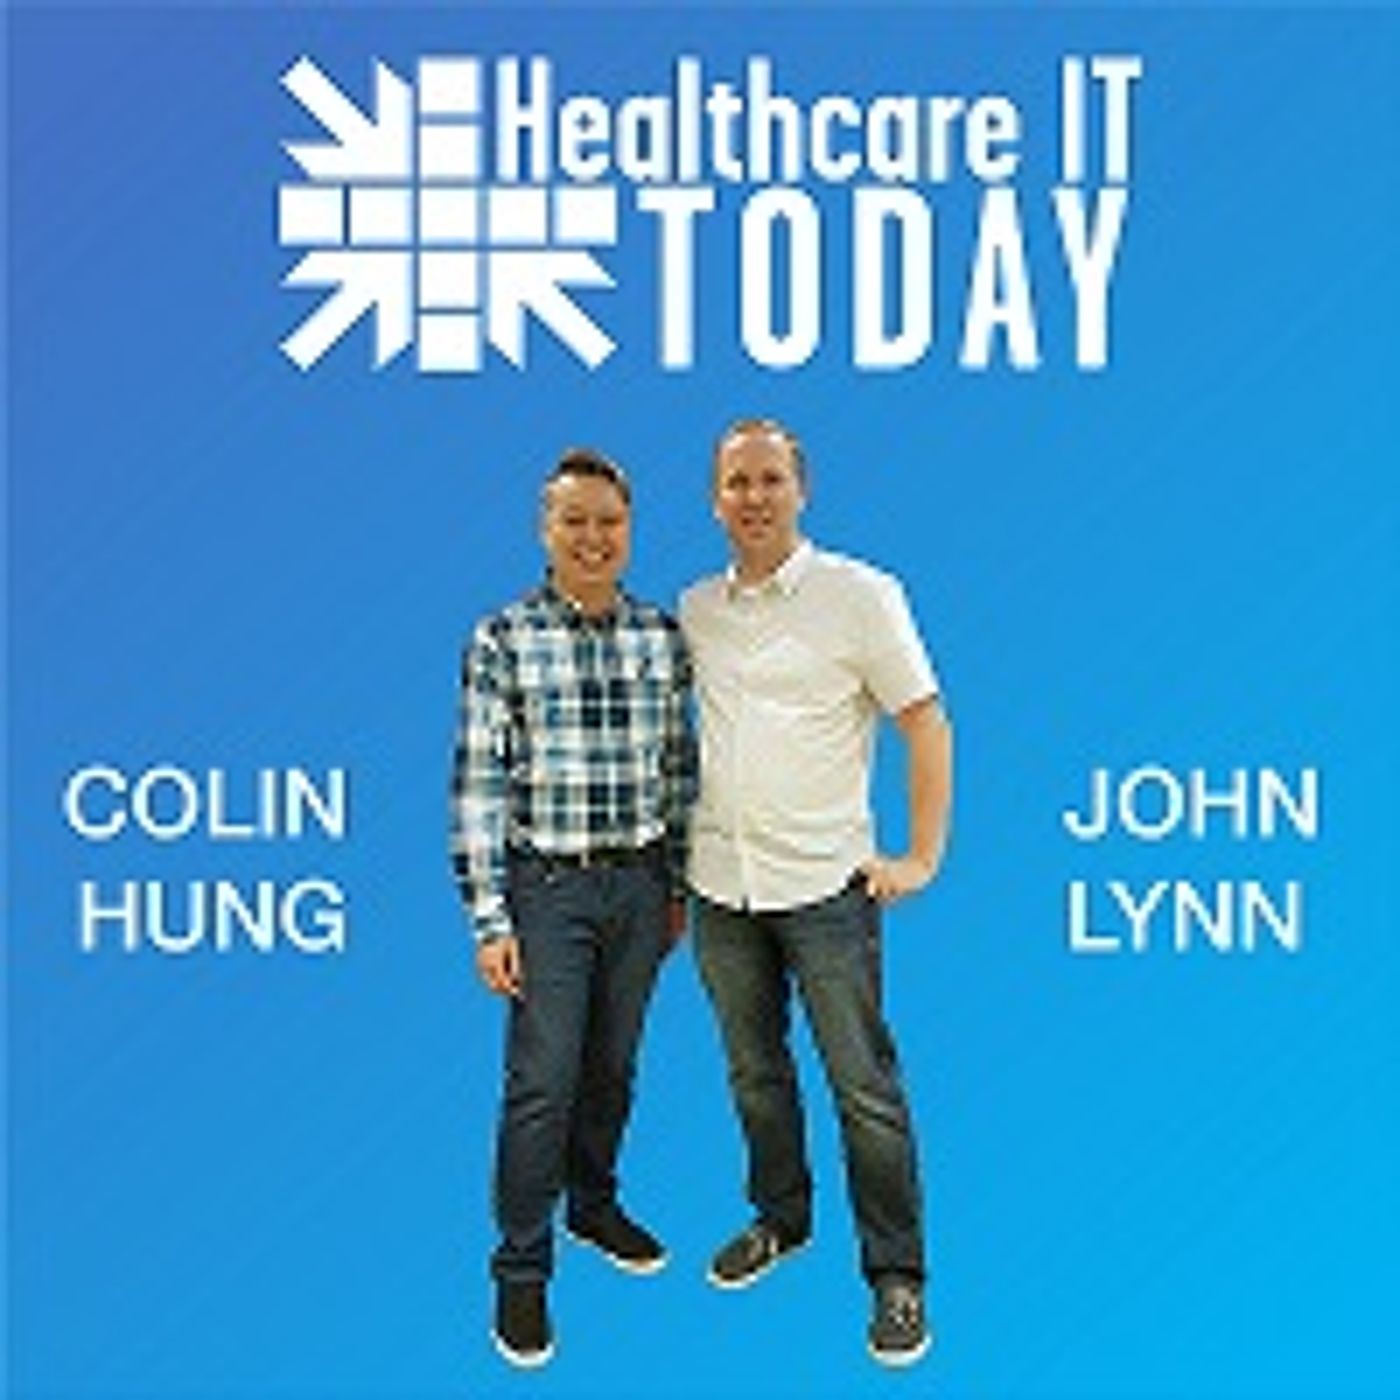 Healthcare IT Today: The Evolving Health IT Career Landscape